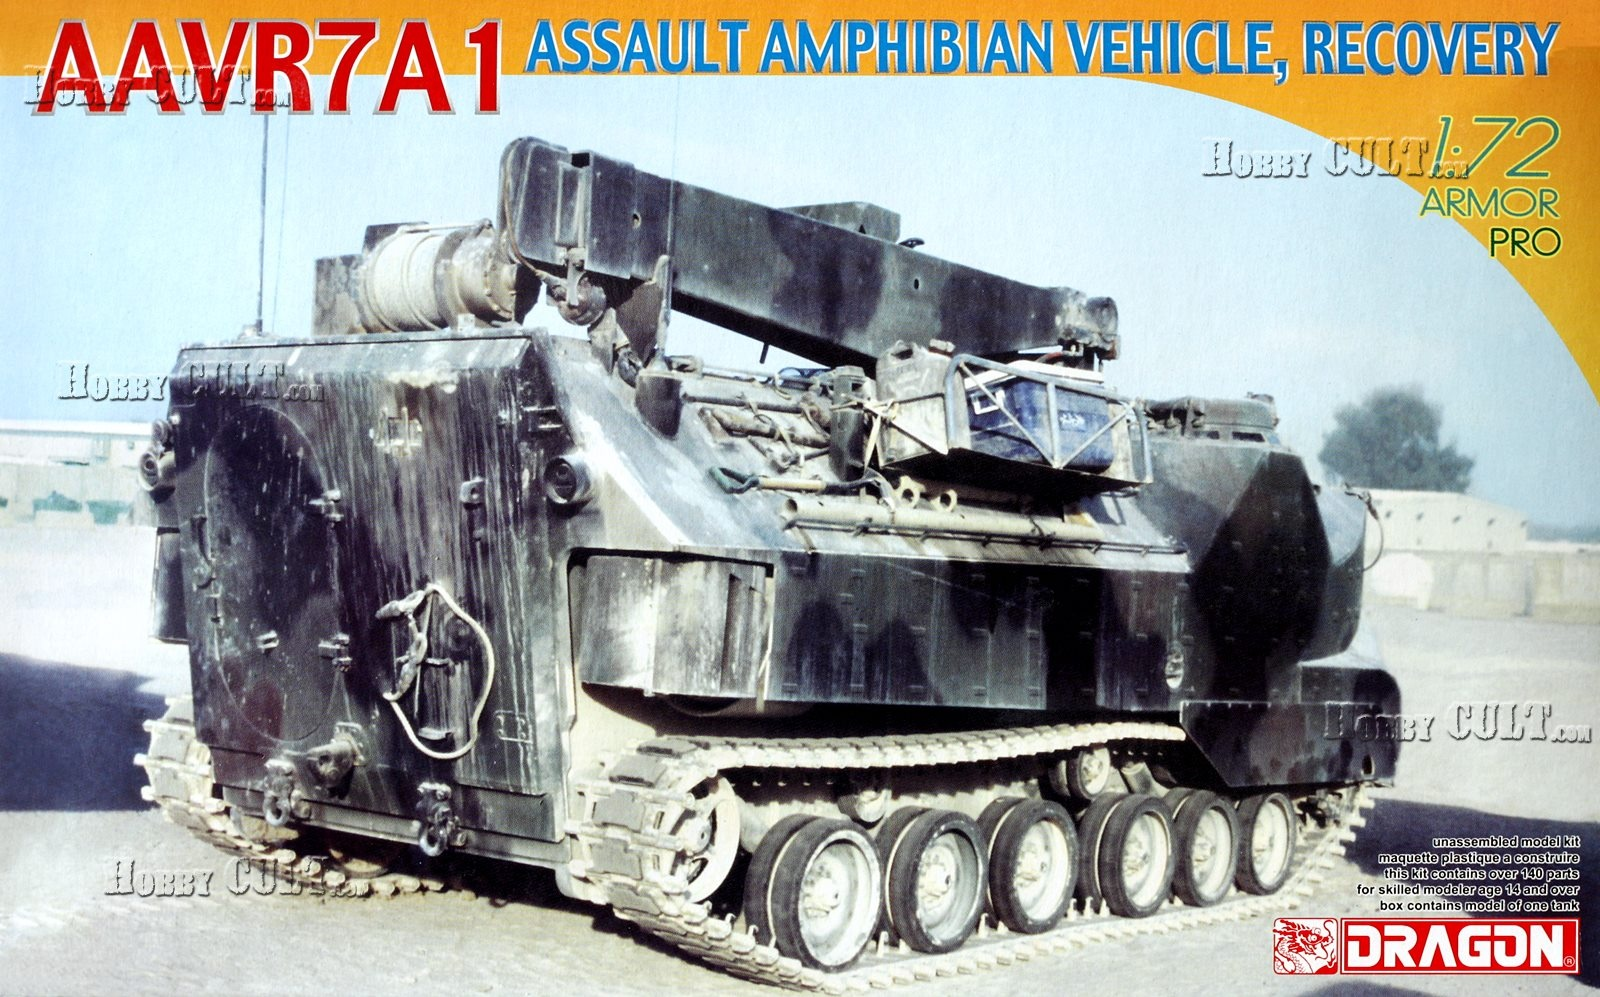 1:72 AAVR7A1 Assault Amphibian Vehicle, Recovery